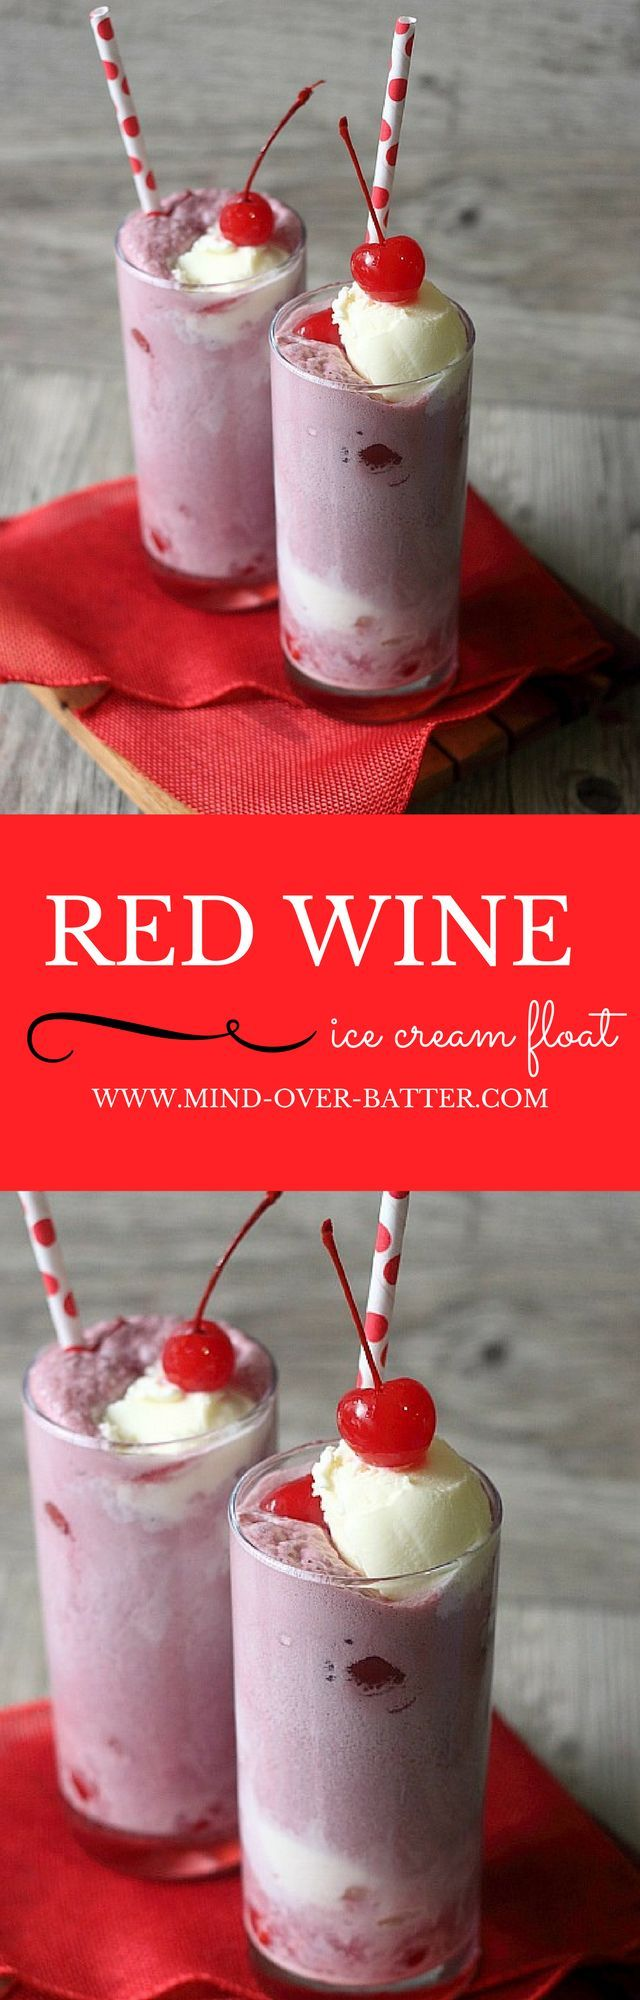 Sparkling red wine, maraschino cherries, and vanilla ice cream. These 3 ingredients make up this deliciously boozy ice cream float. Perfect for your next Girls Night! http://www.mind-over-batter.com